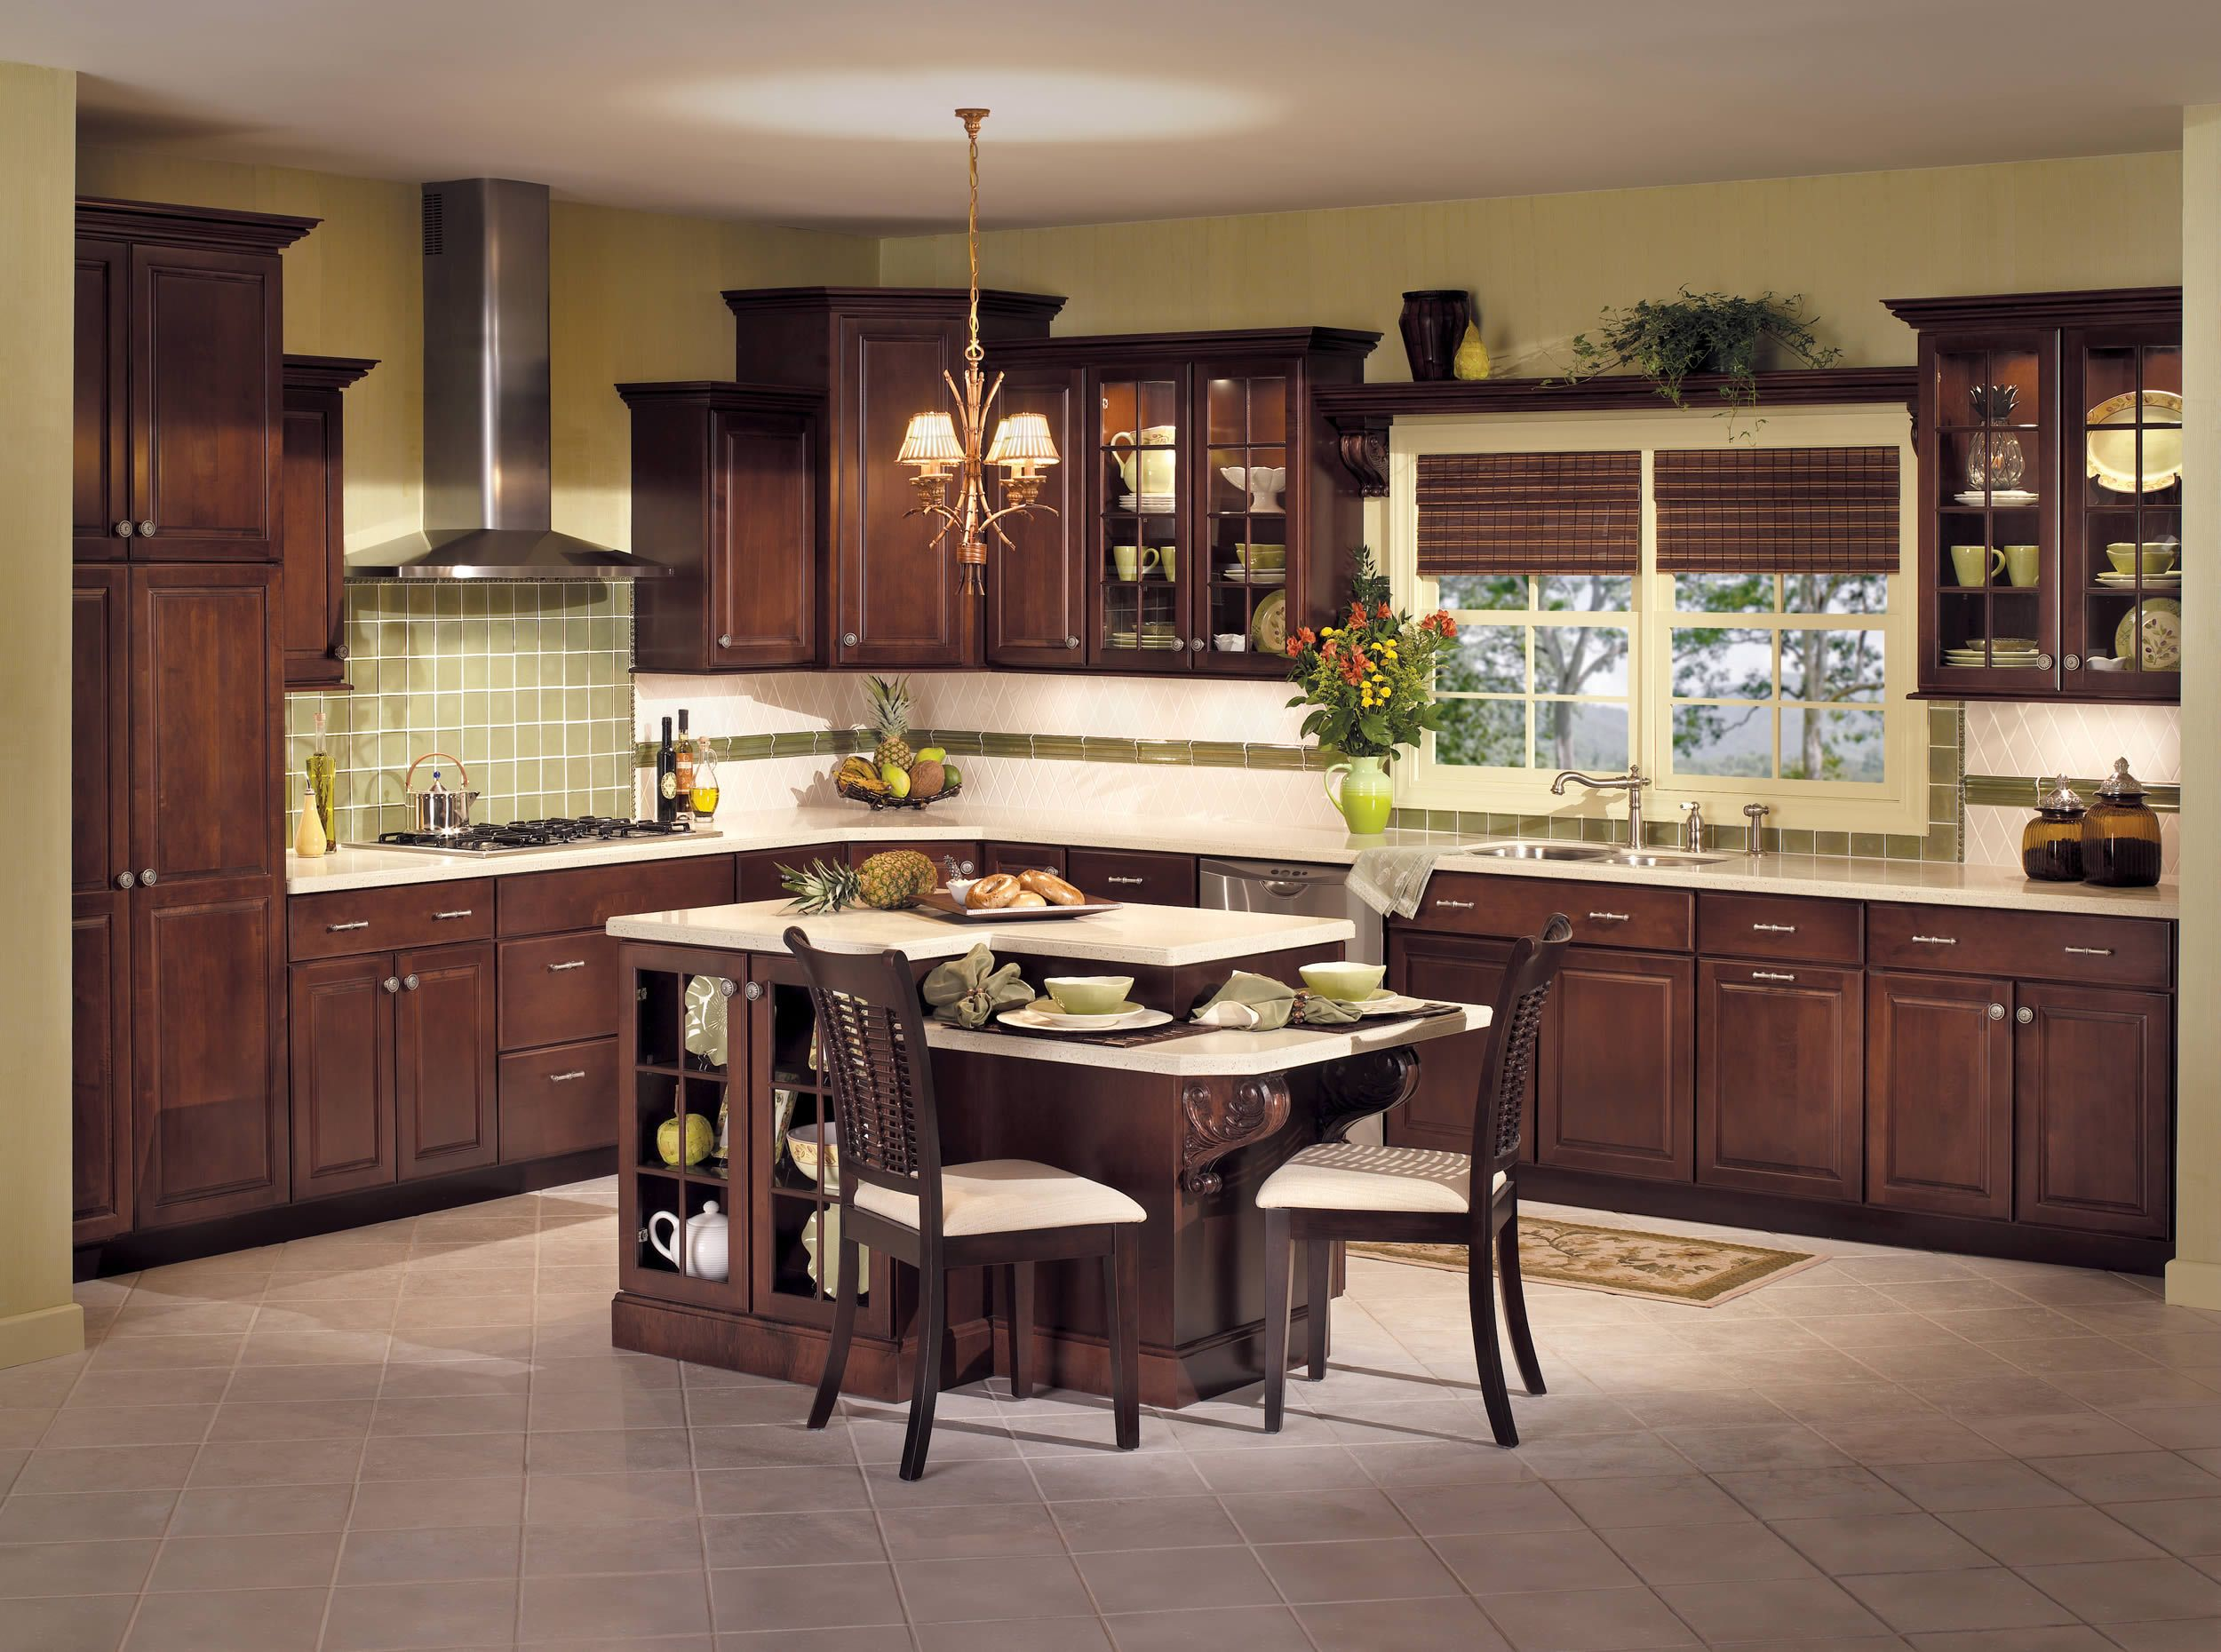 Custom Cabinets For Your Kitchen And Bath Zeeland Lumber Supply Kitchen Cabinet Remodel Kitchen Design Kitchen Remodel Inspiration